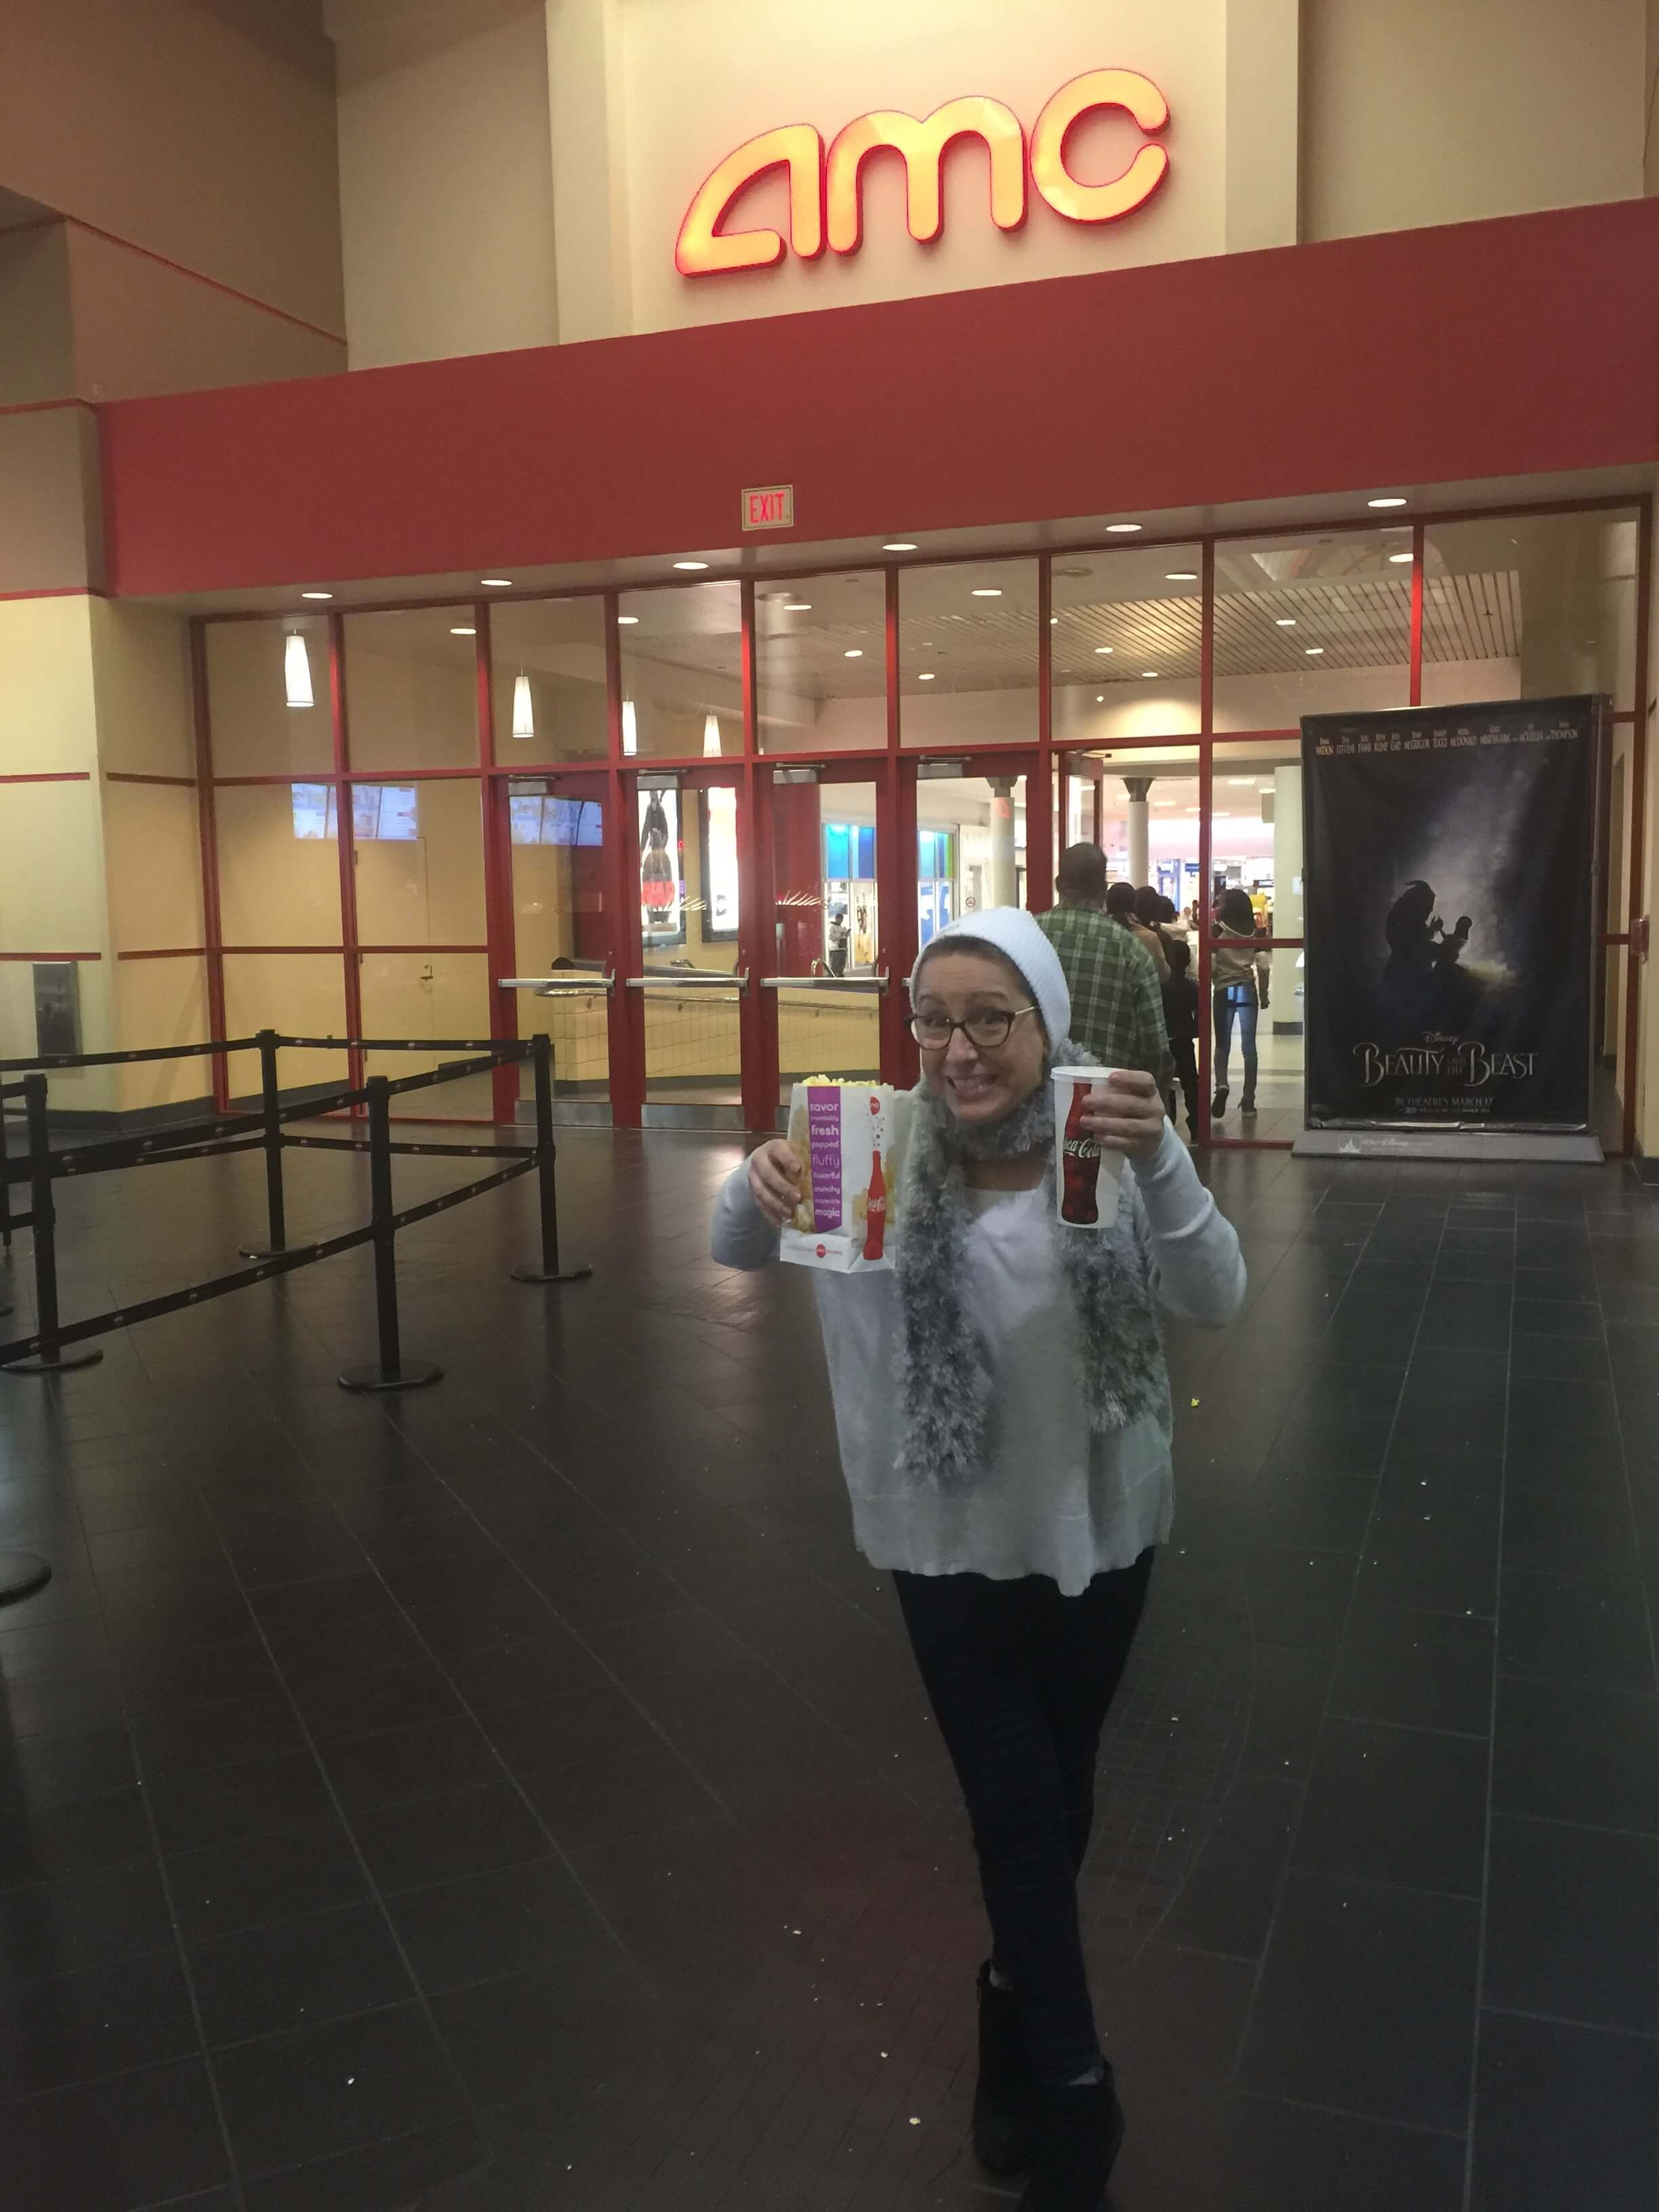 only 5 for a coke and popcorn at amc theatres for middle